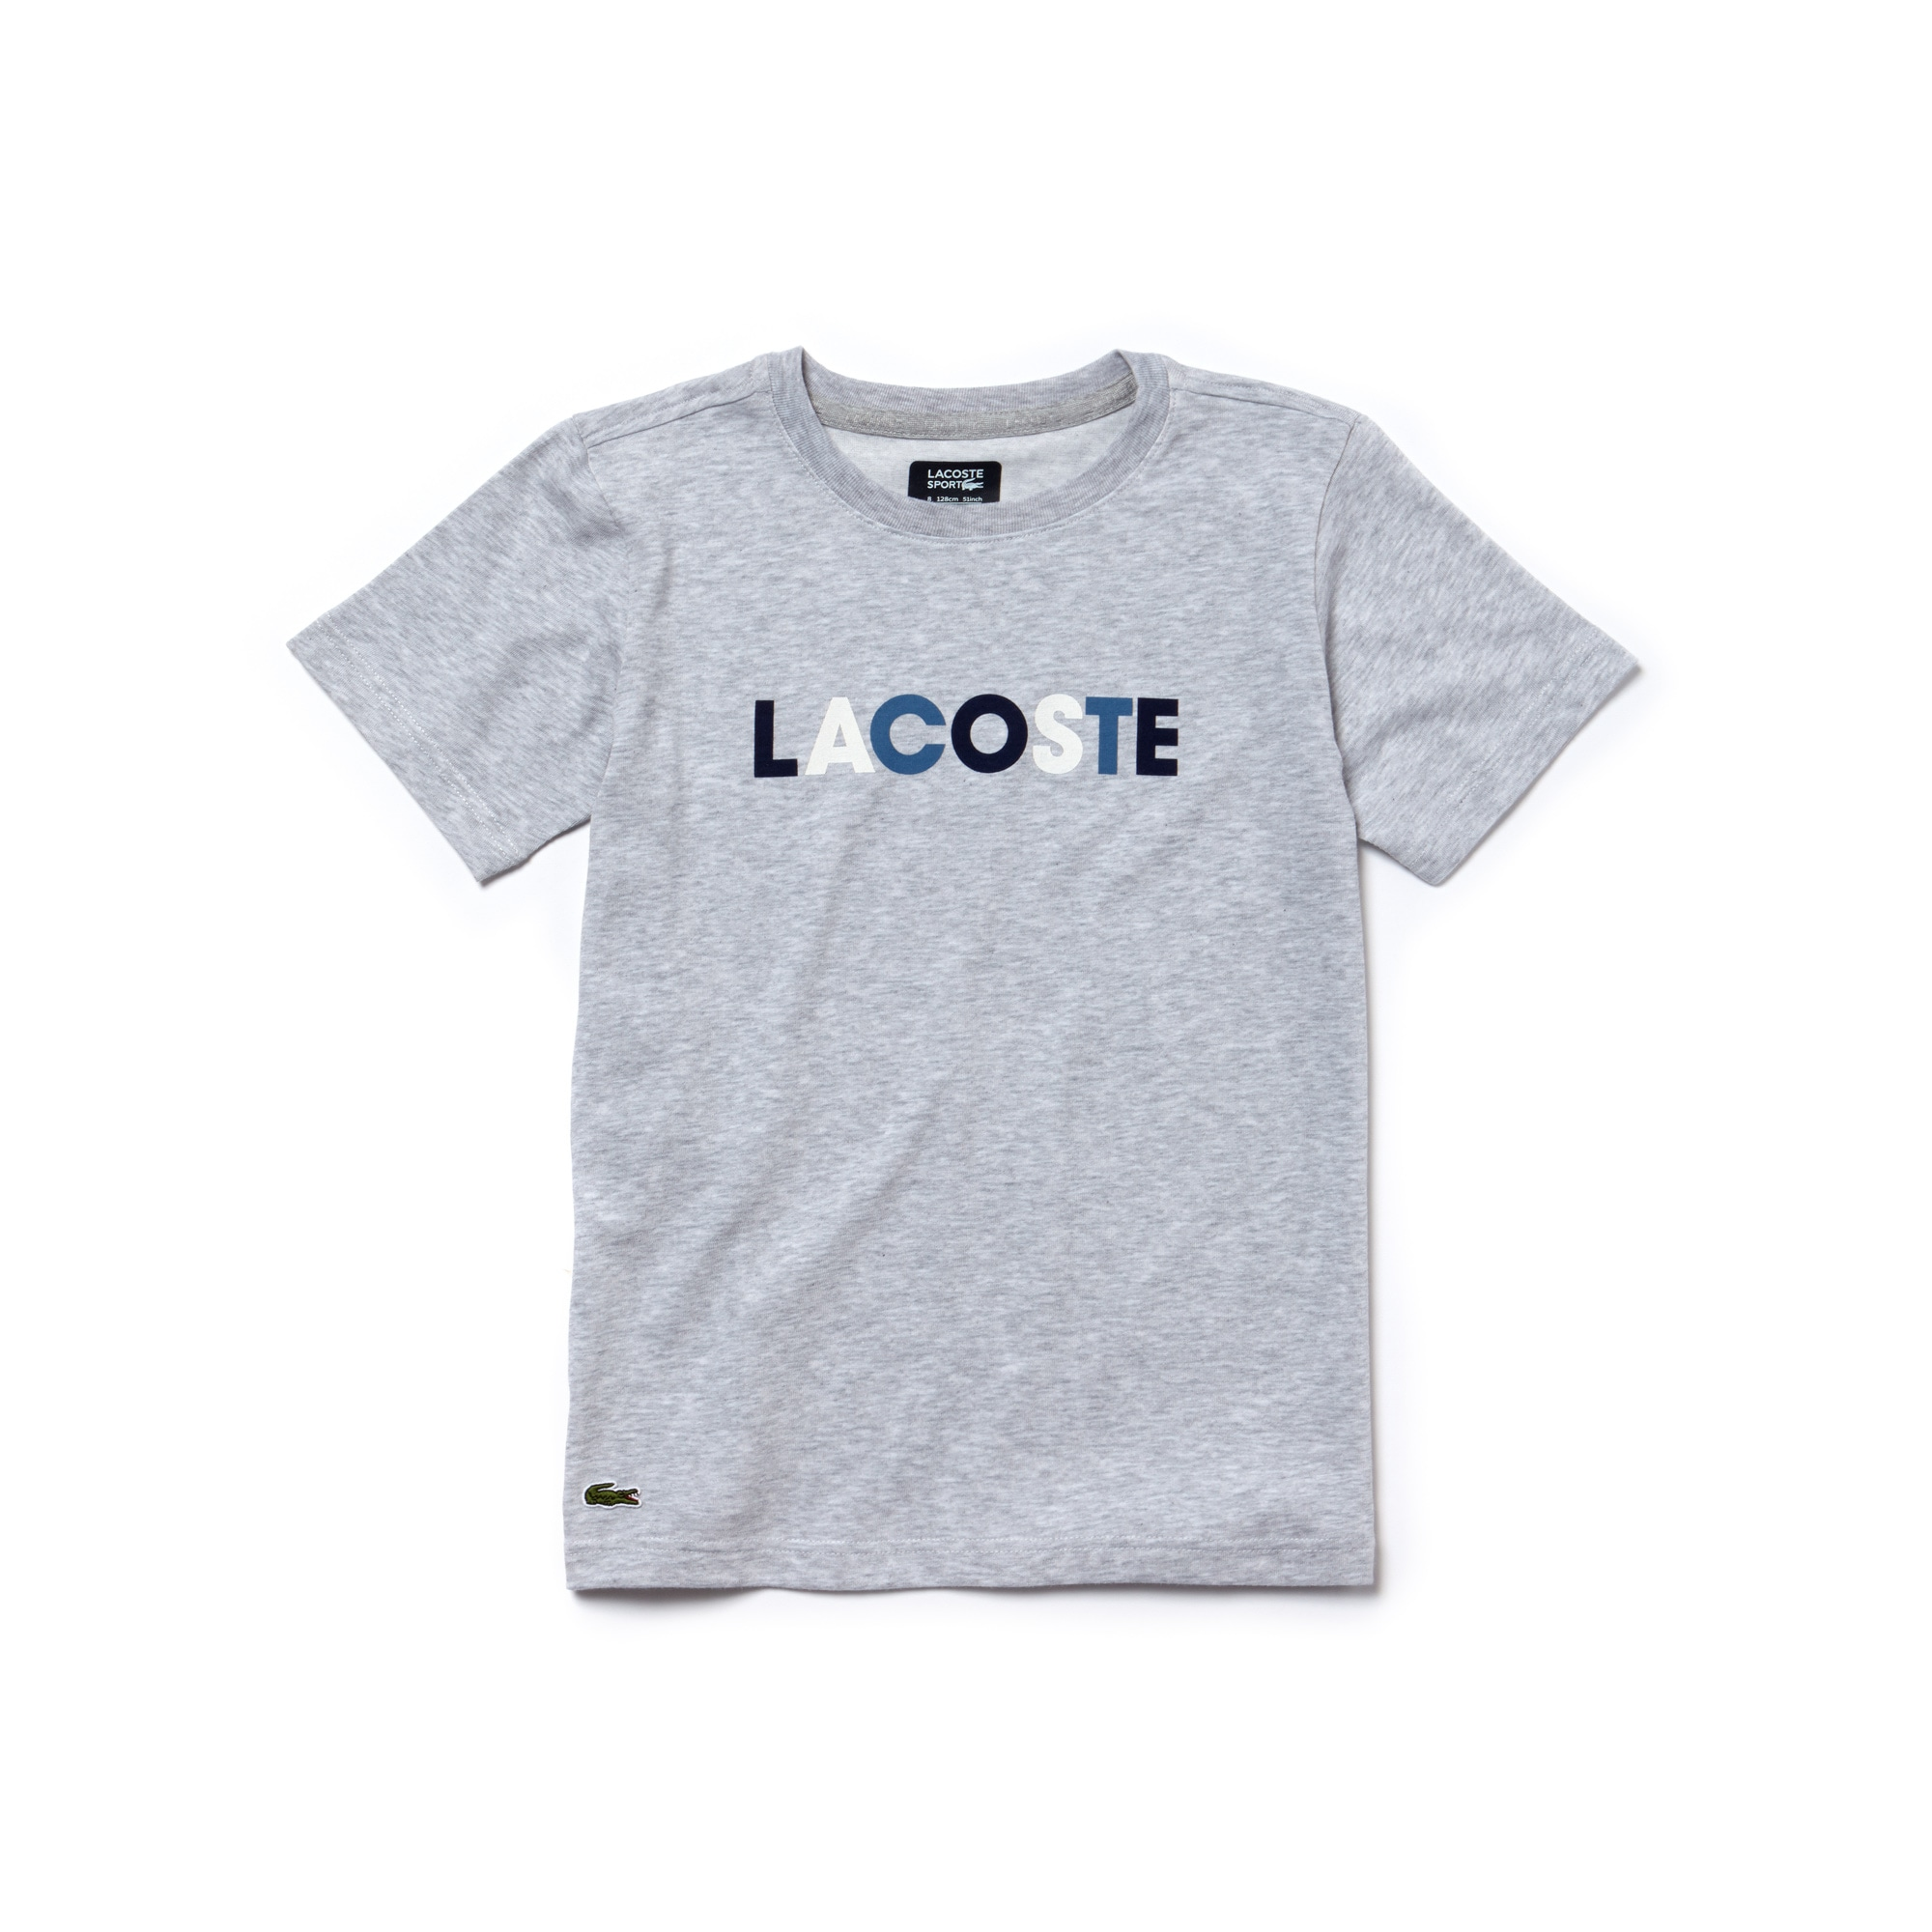 Boys' Lacoste SPORT Lettering Technical Jersey Tennis T-shirt